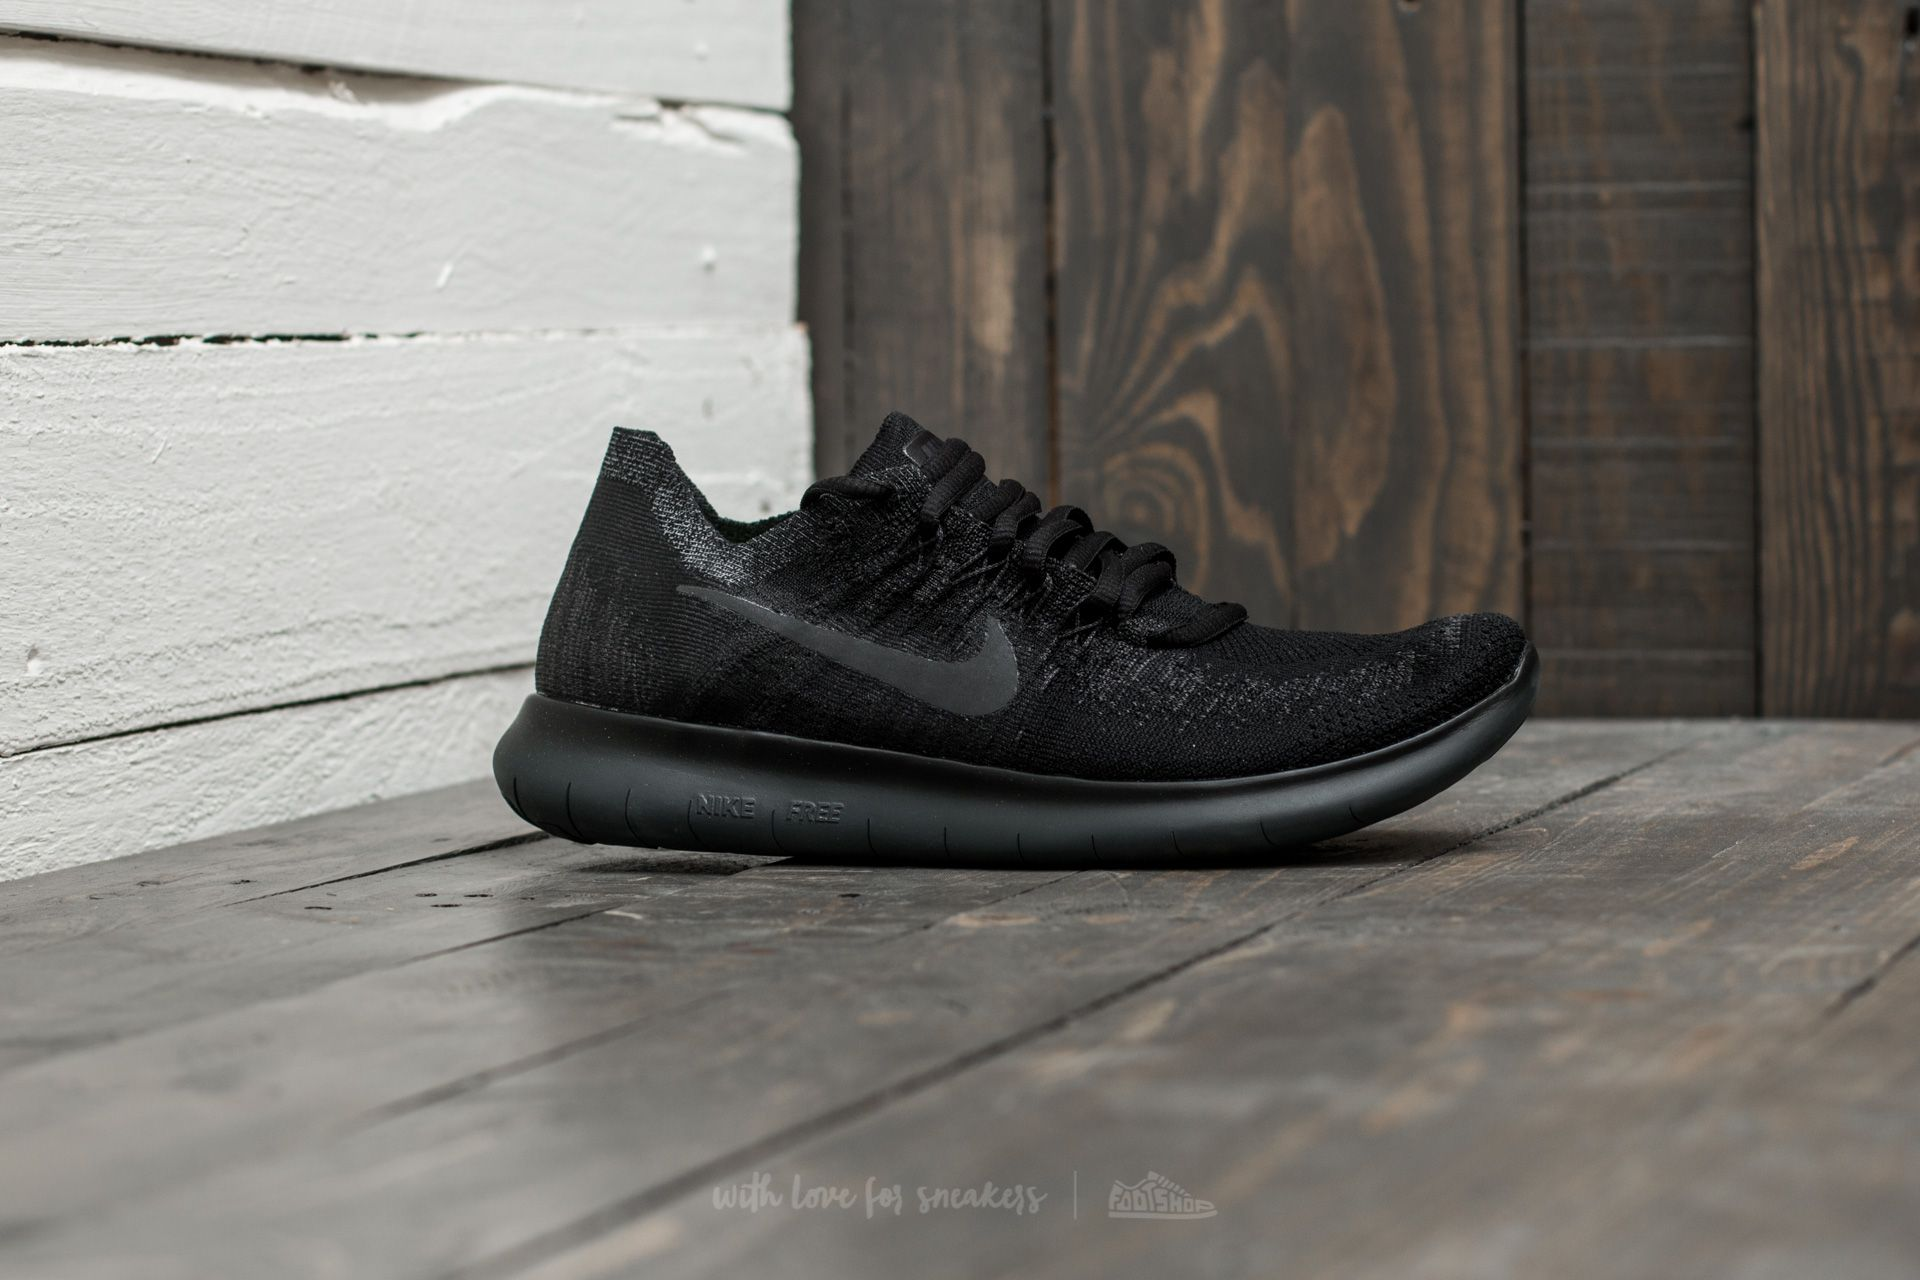 free shipping 425d1 50a35 Nike Wmns Free RN Flyknit 2017 Black/ Anthracite-Anthracite ...